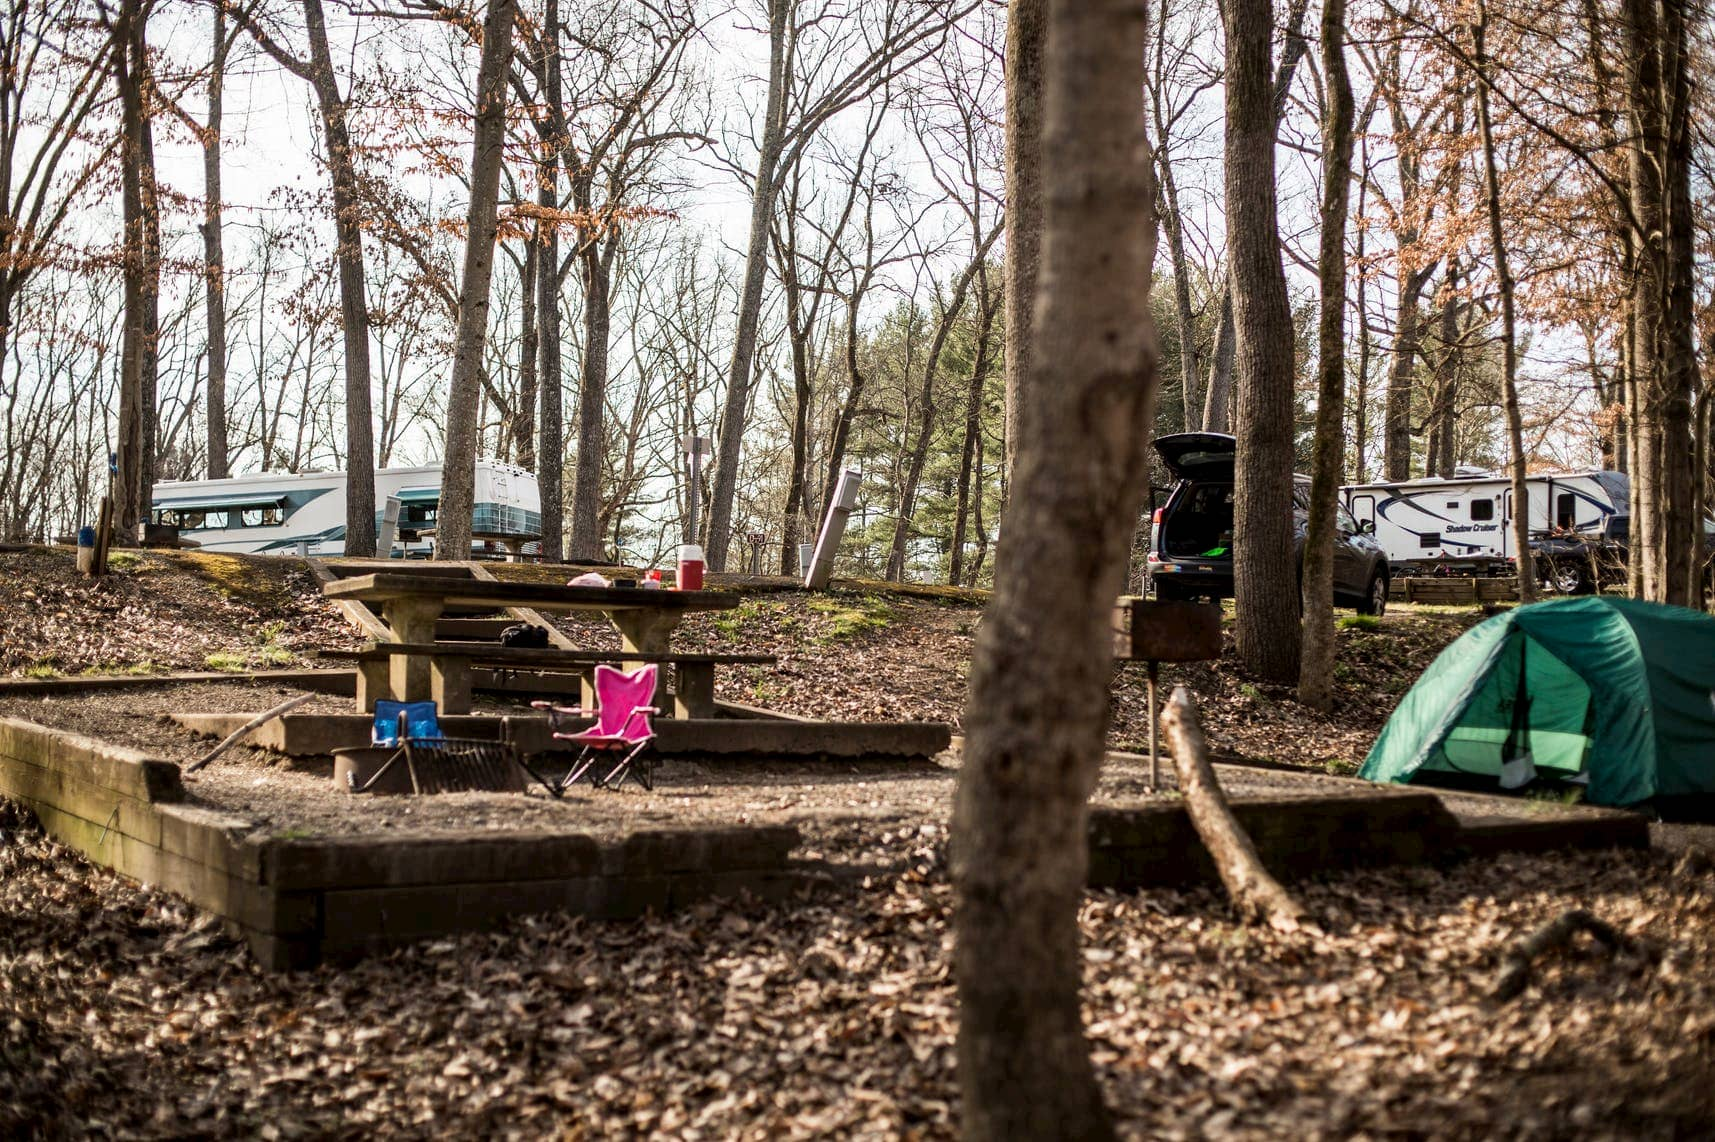 Wooded campground in autumn with a picnic table and RVs parked in the background.